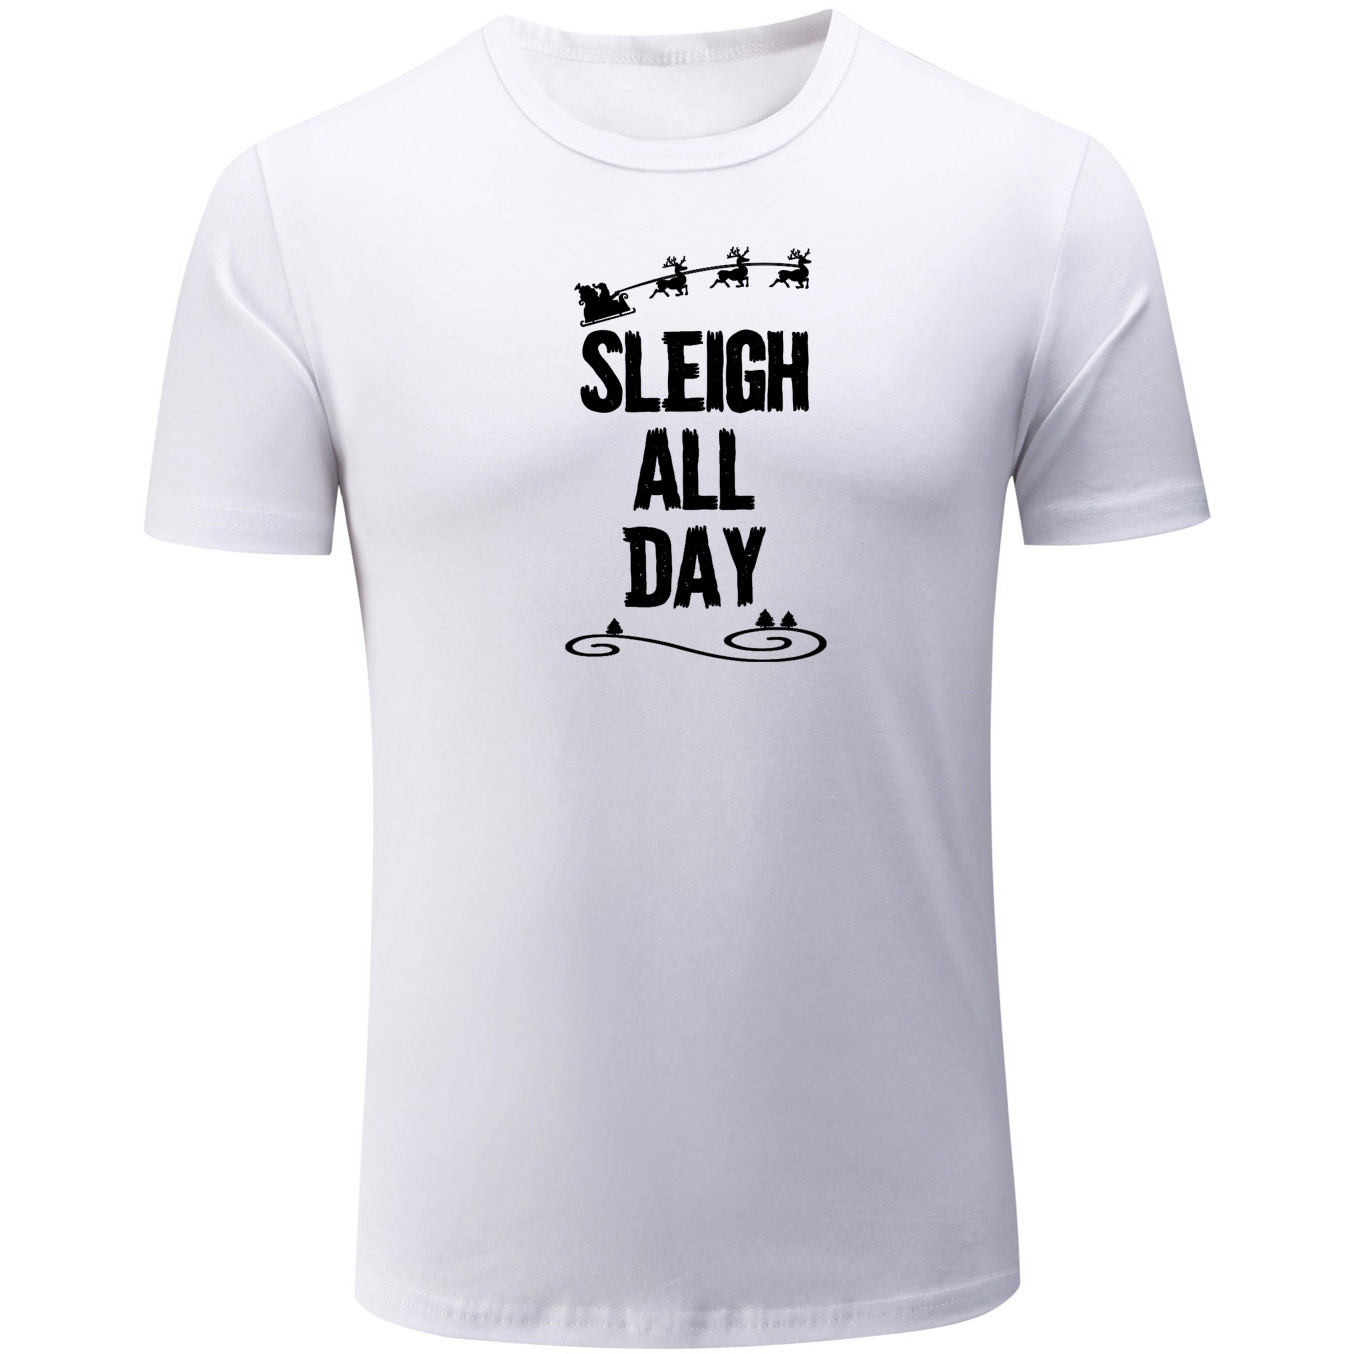 Beautiful Funny Short Sleeve Men's T-shirt Sleigh All Day Summer Unisex Tee Shirts Cotton Fitness Tops For Boy Casual Holiday Clothing Sale Overall Discount 50-70%